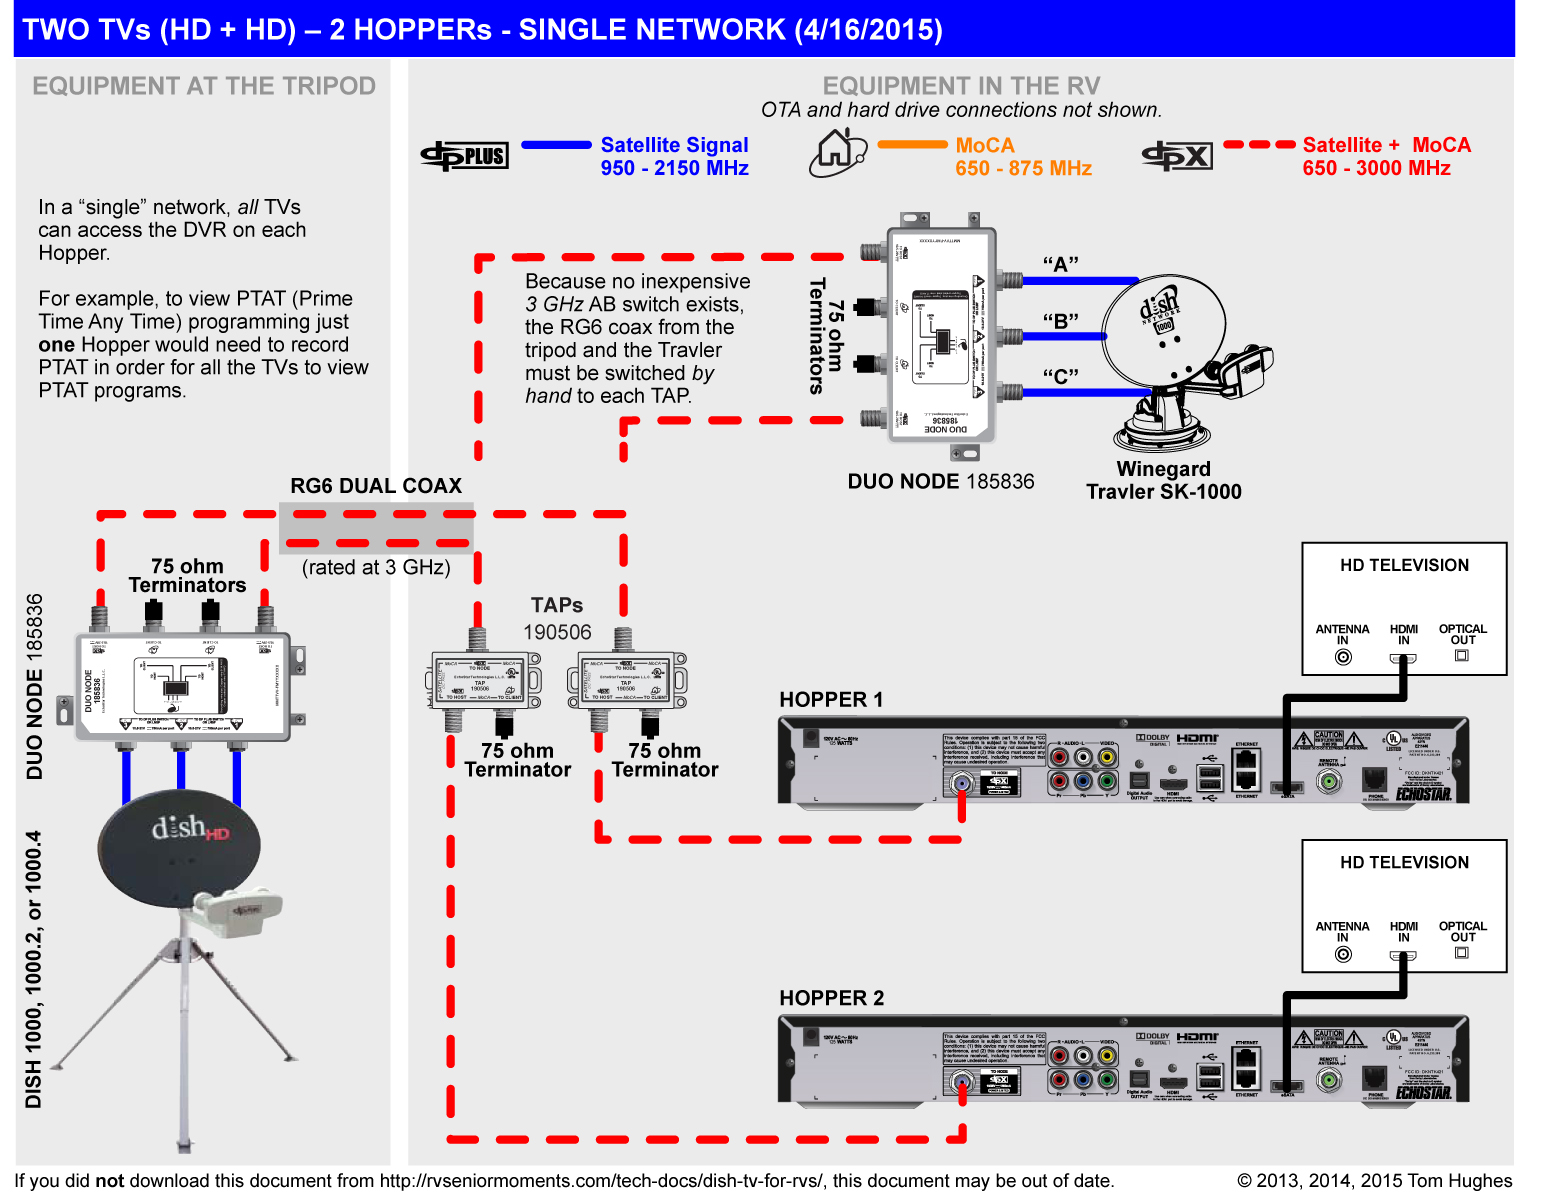 210_dish_twotvs_two_hoppers_single_network_hdhd720dpi directv whole home dvr wiring diagram directv free wiring dvd wiring diagram 2011 honda accord at reclaimingppi.co